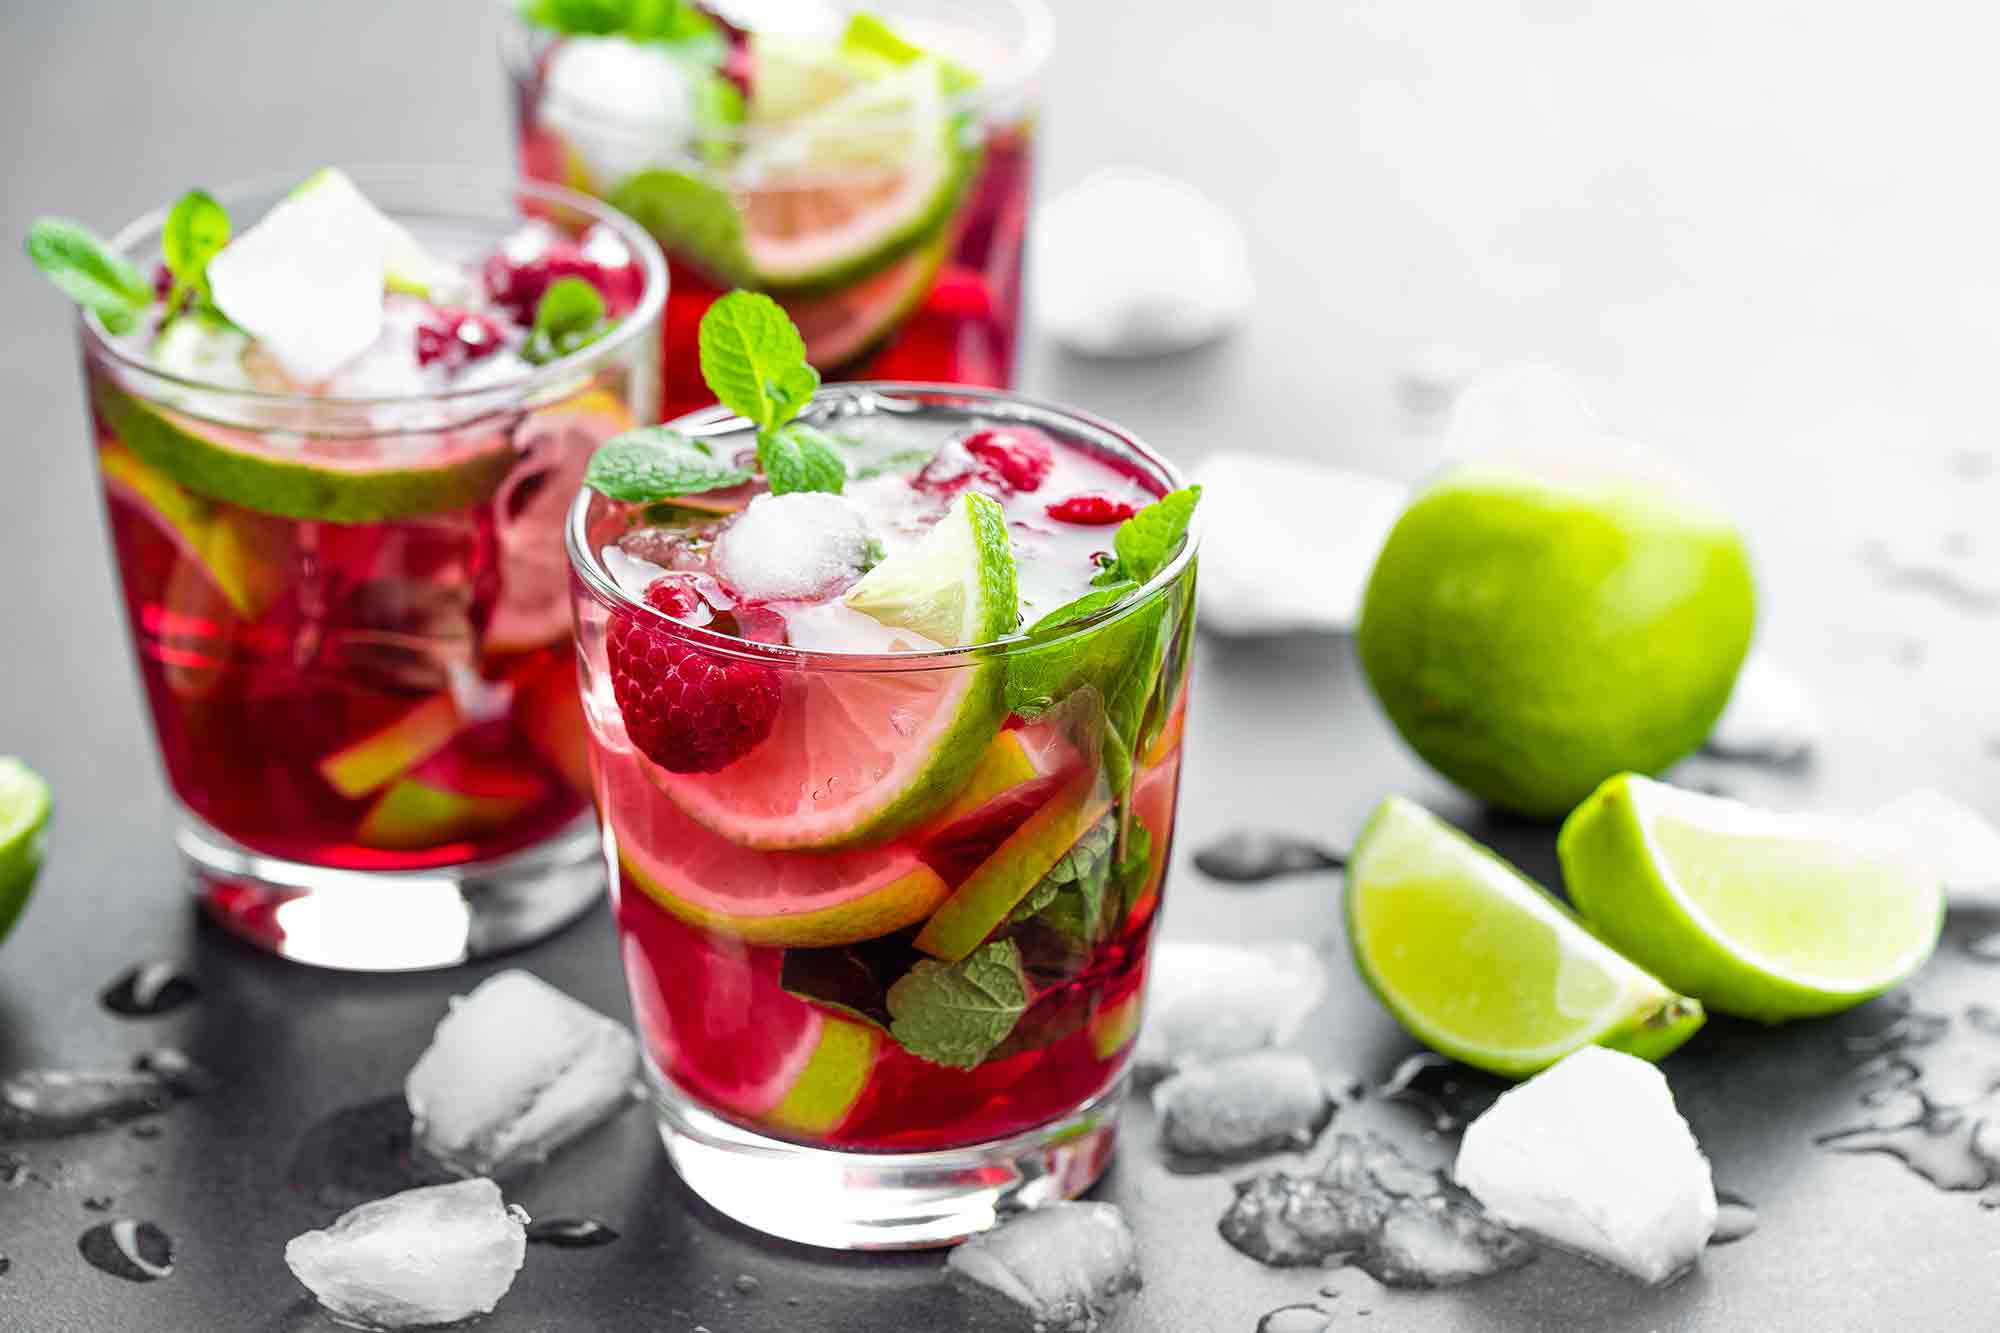 Raspberry-mojito-mocktail-with-lime-mint-and-ice-cold-iced-refreshing-drink-or-beverage Make Mine a Mocktail